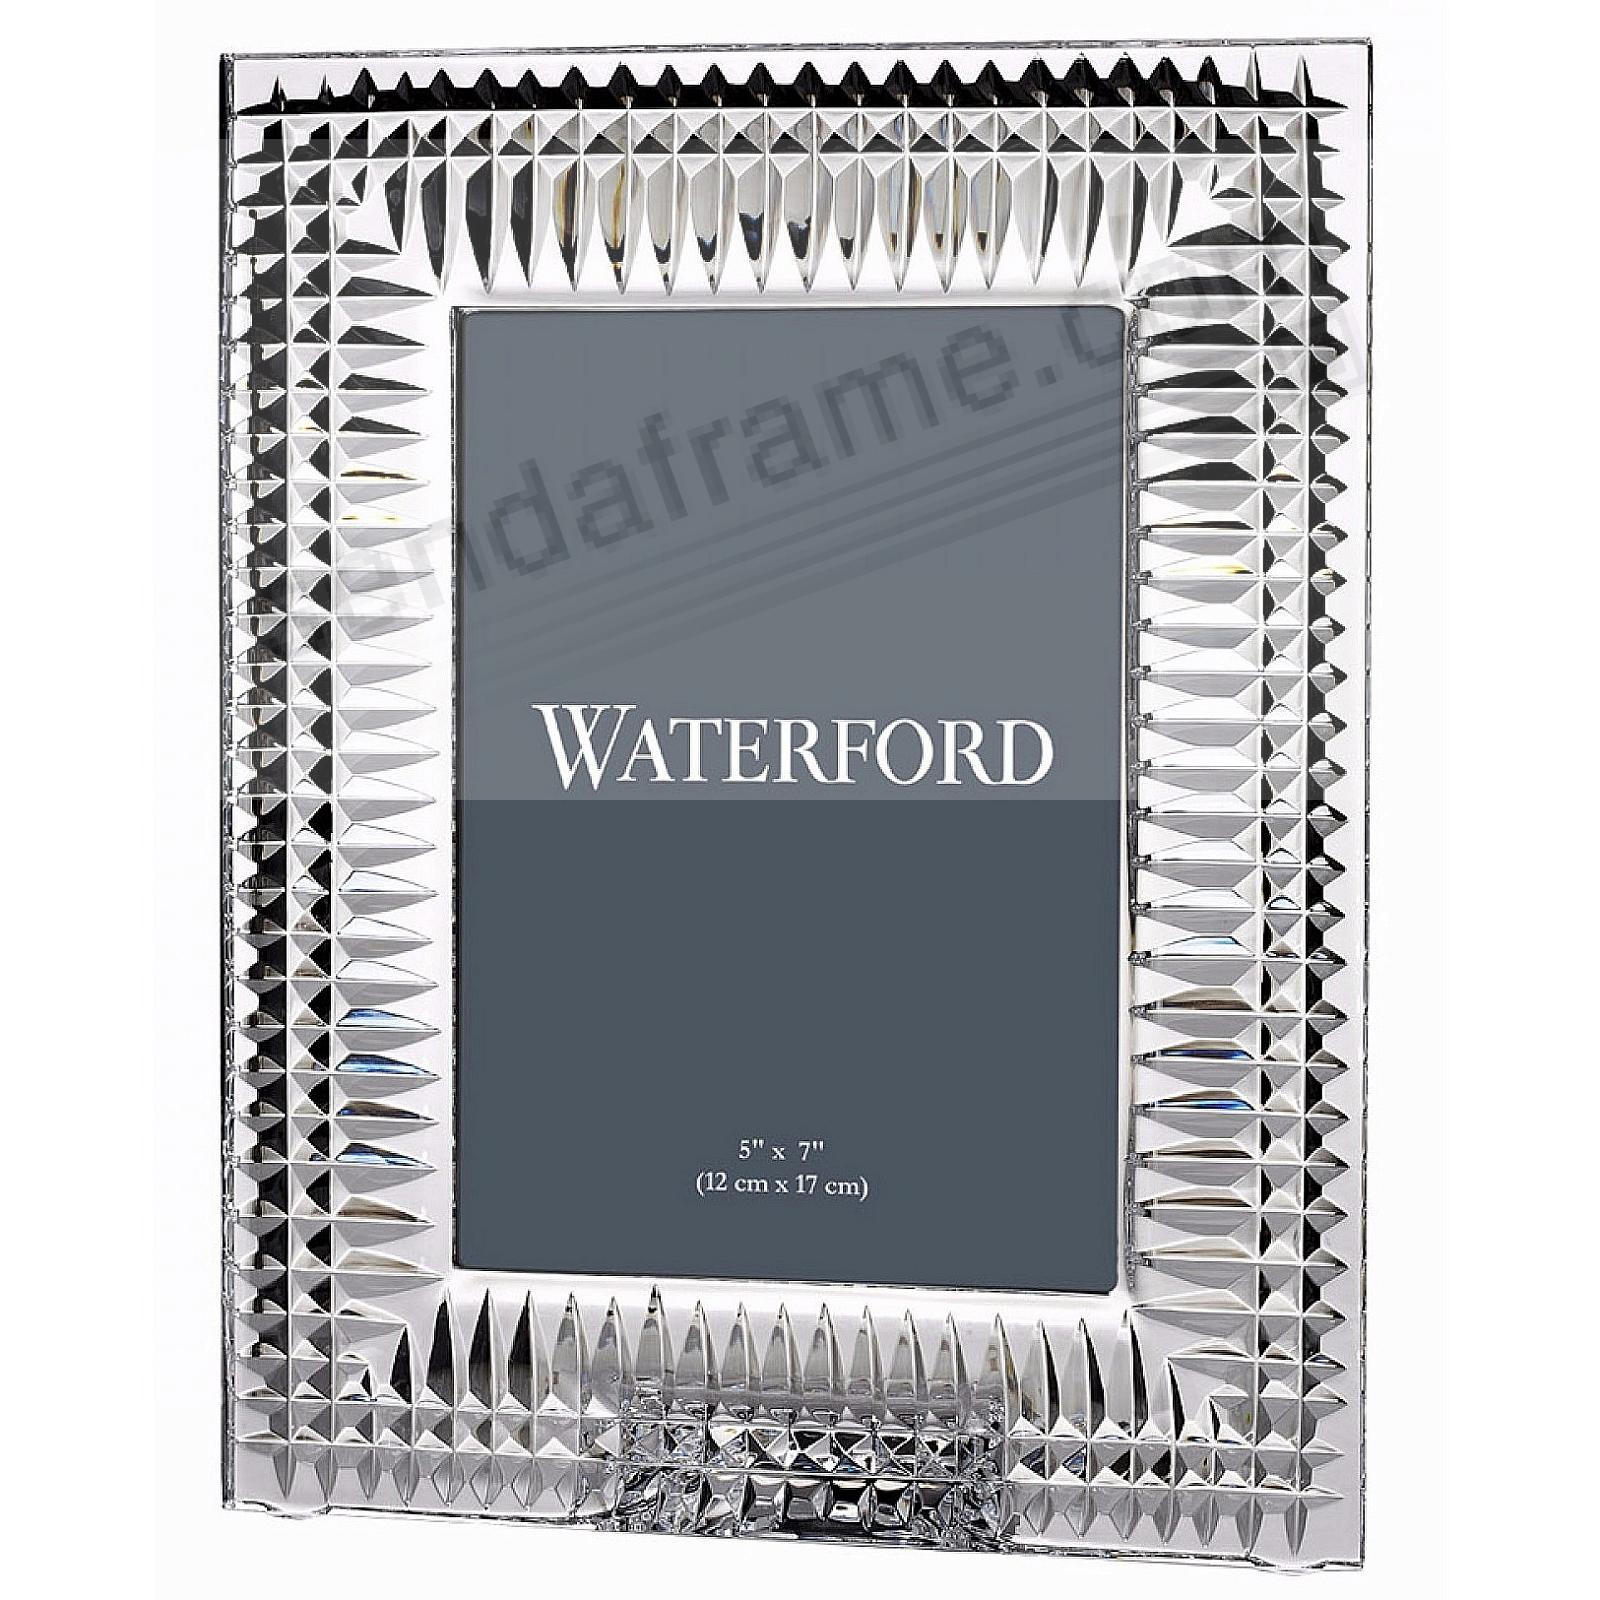 LISMORE DIAMOND crystal design by Waterford®